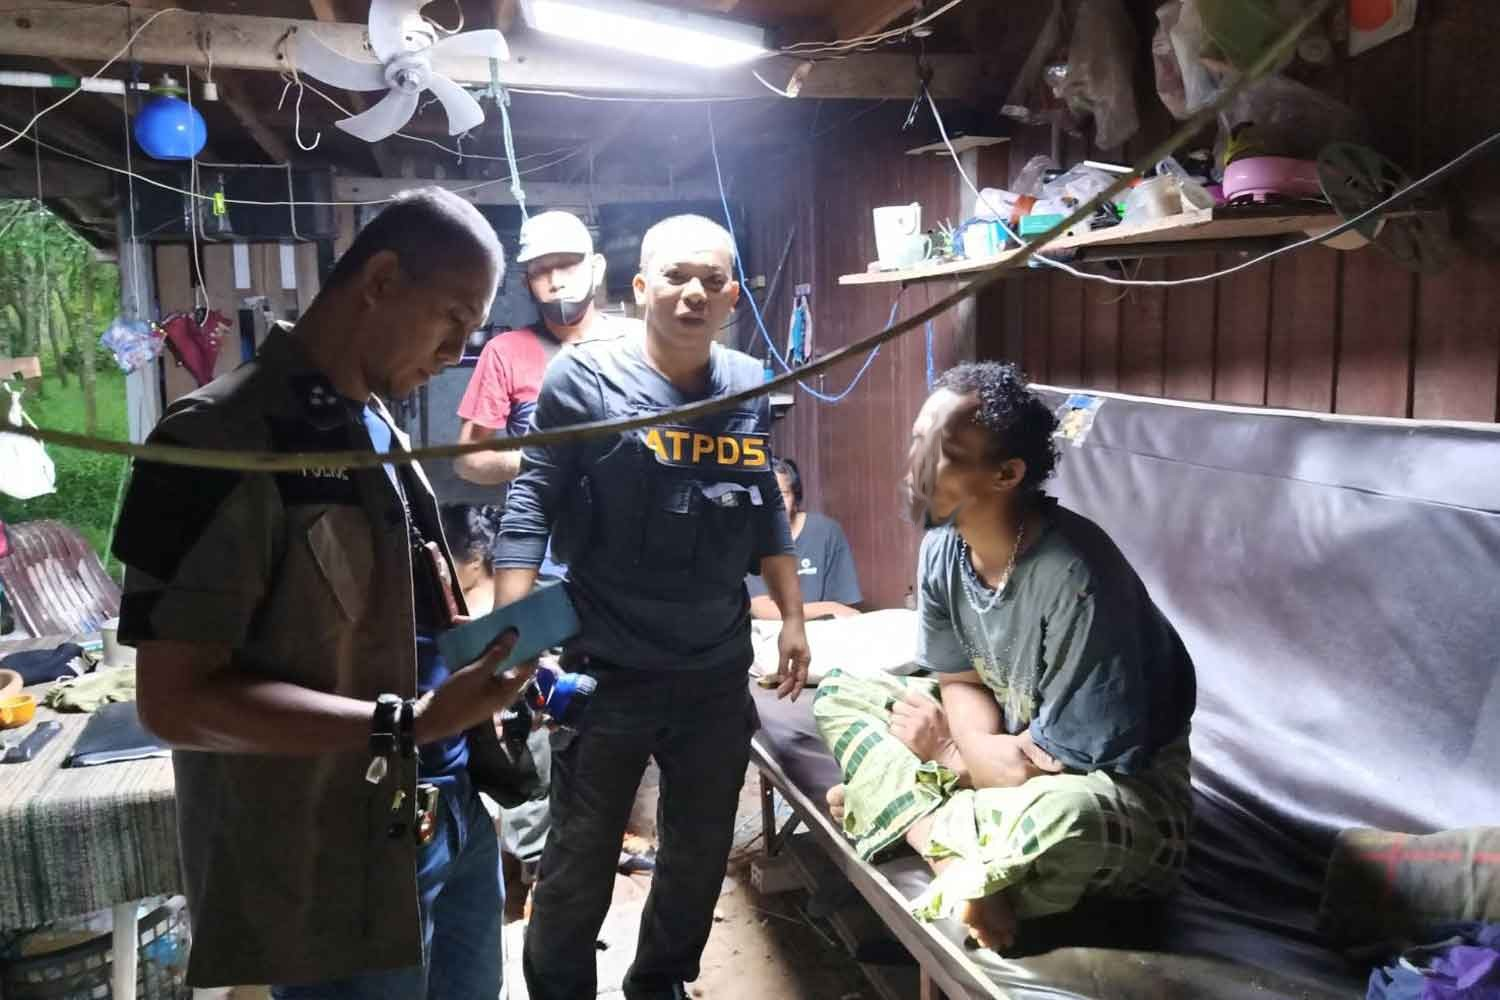 The suspect is arrested by police at his house in Tha Sala district, Nakhon Si Thammarat, and charged with the rape of his stepdaughter. (Police photo)